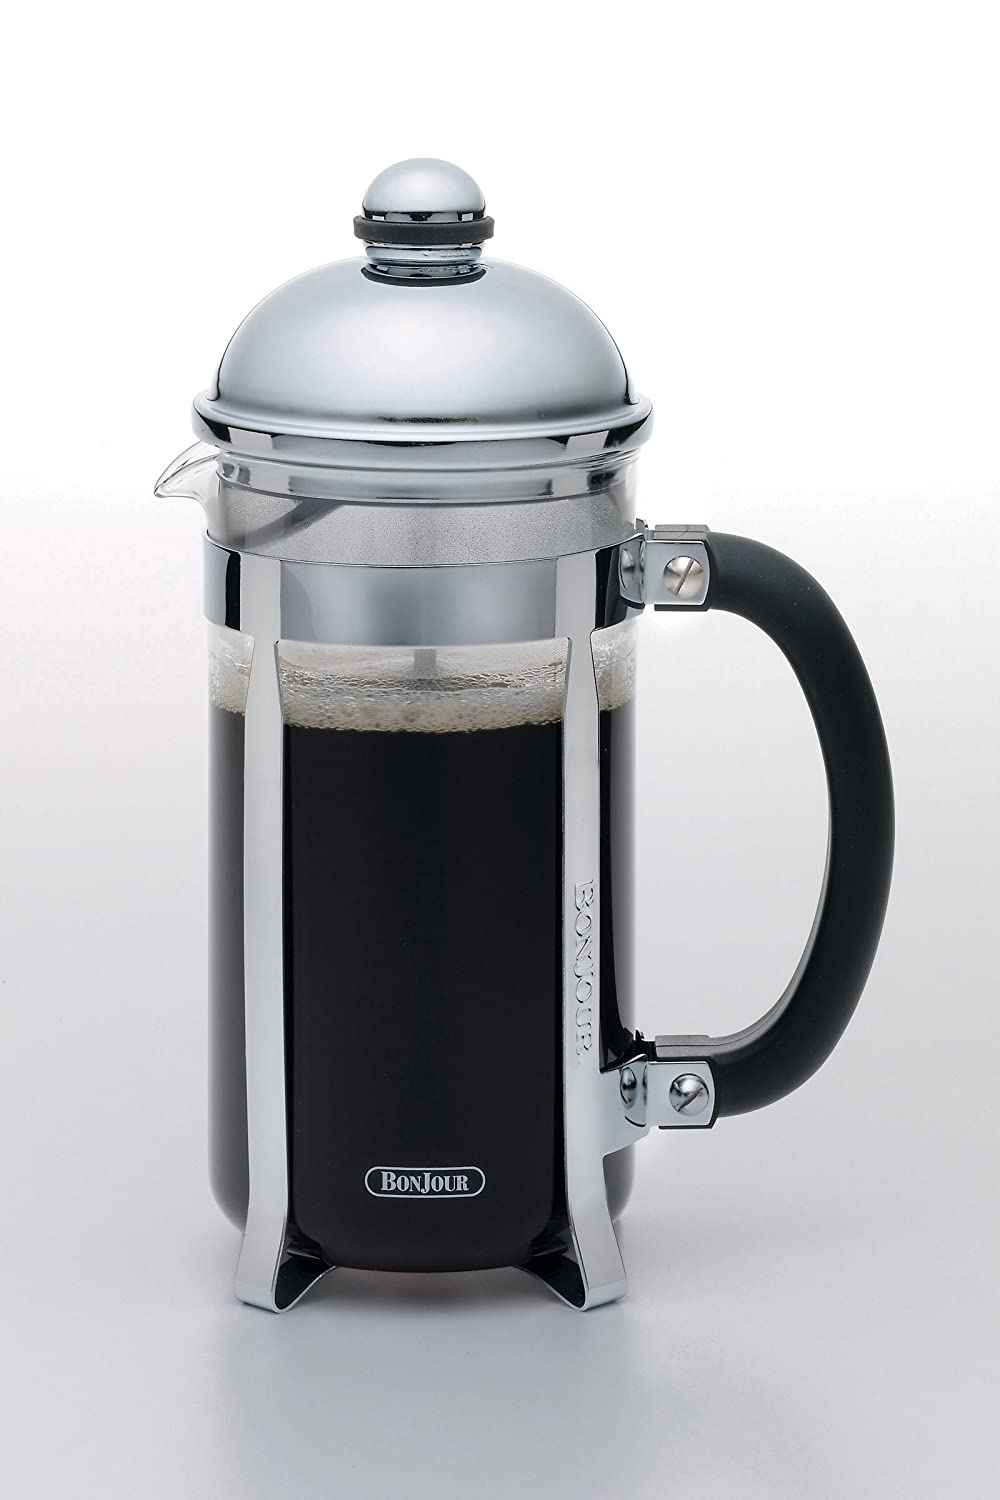 BonJour Coffee 8-Demitasse Cup, 33.8 oz, Maximus French Press, Stainless Steel